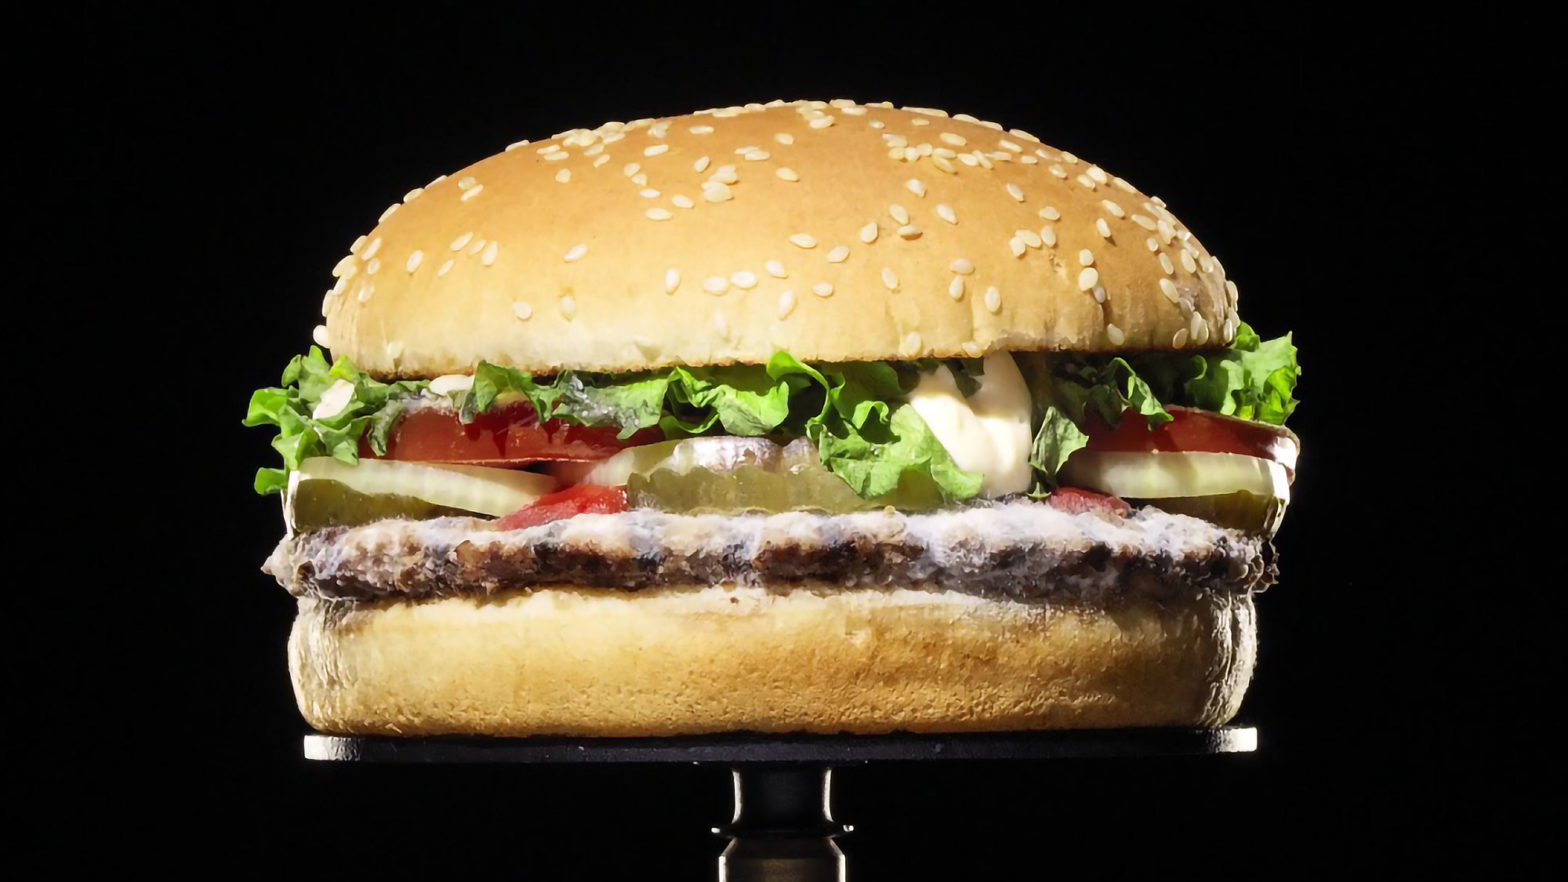 Burger King Molded Burger Campaign